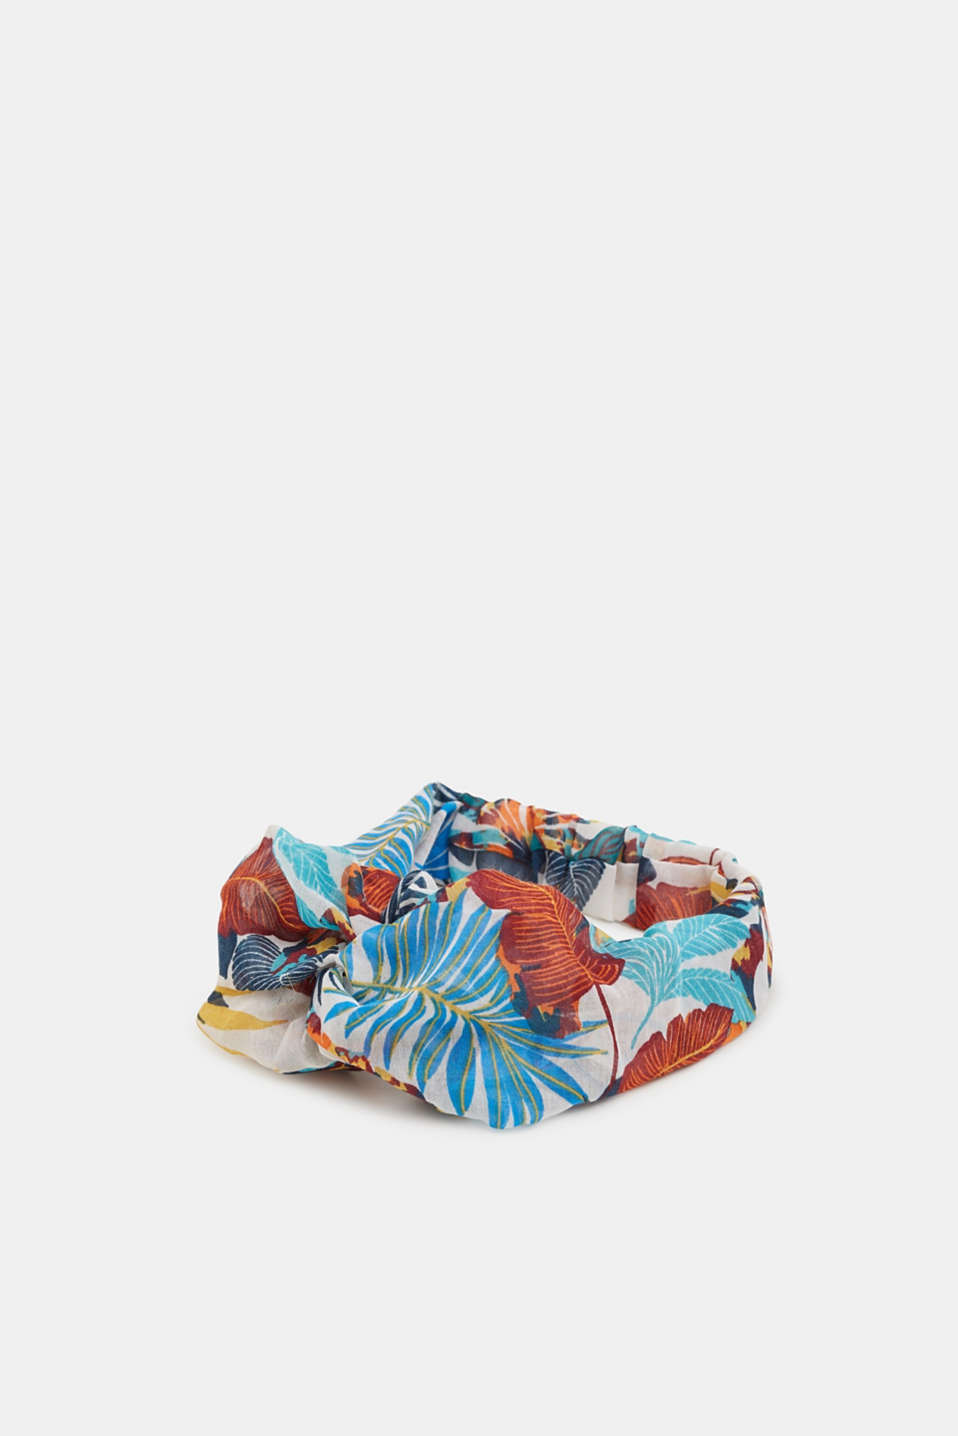 Esprit - Headband with a floral pattern